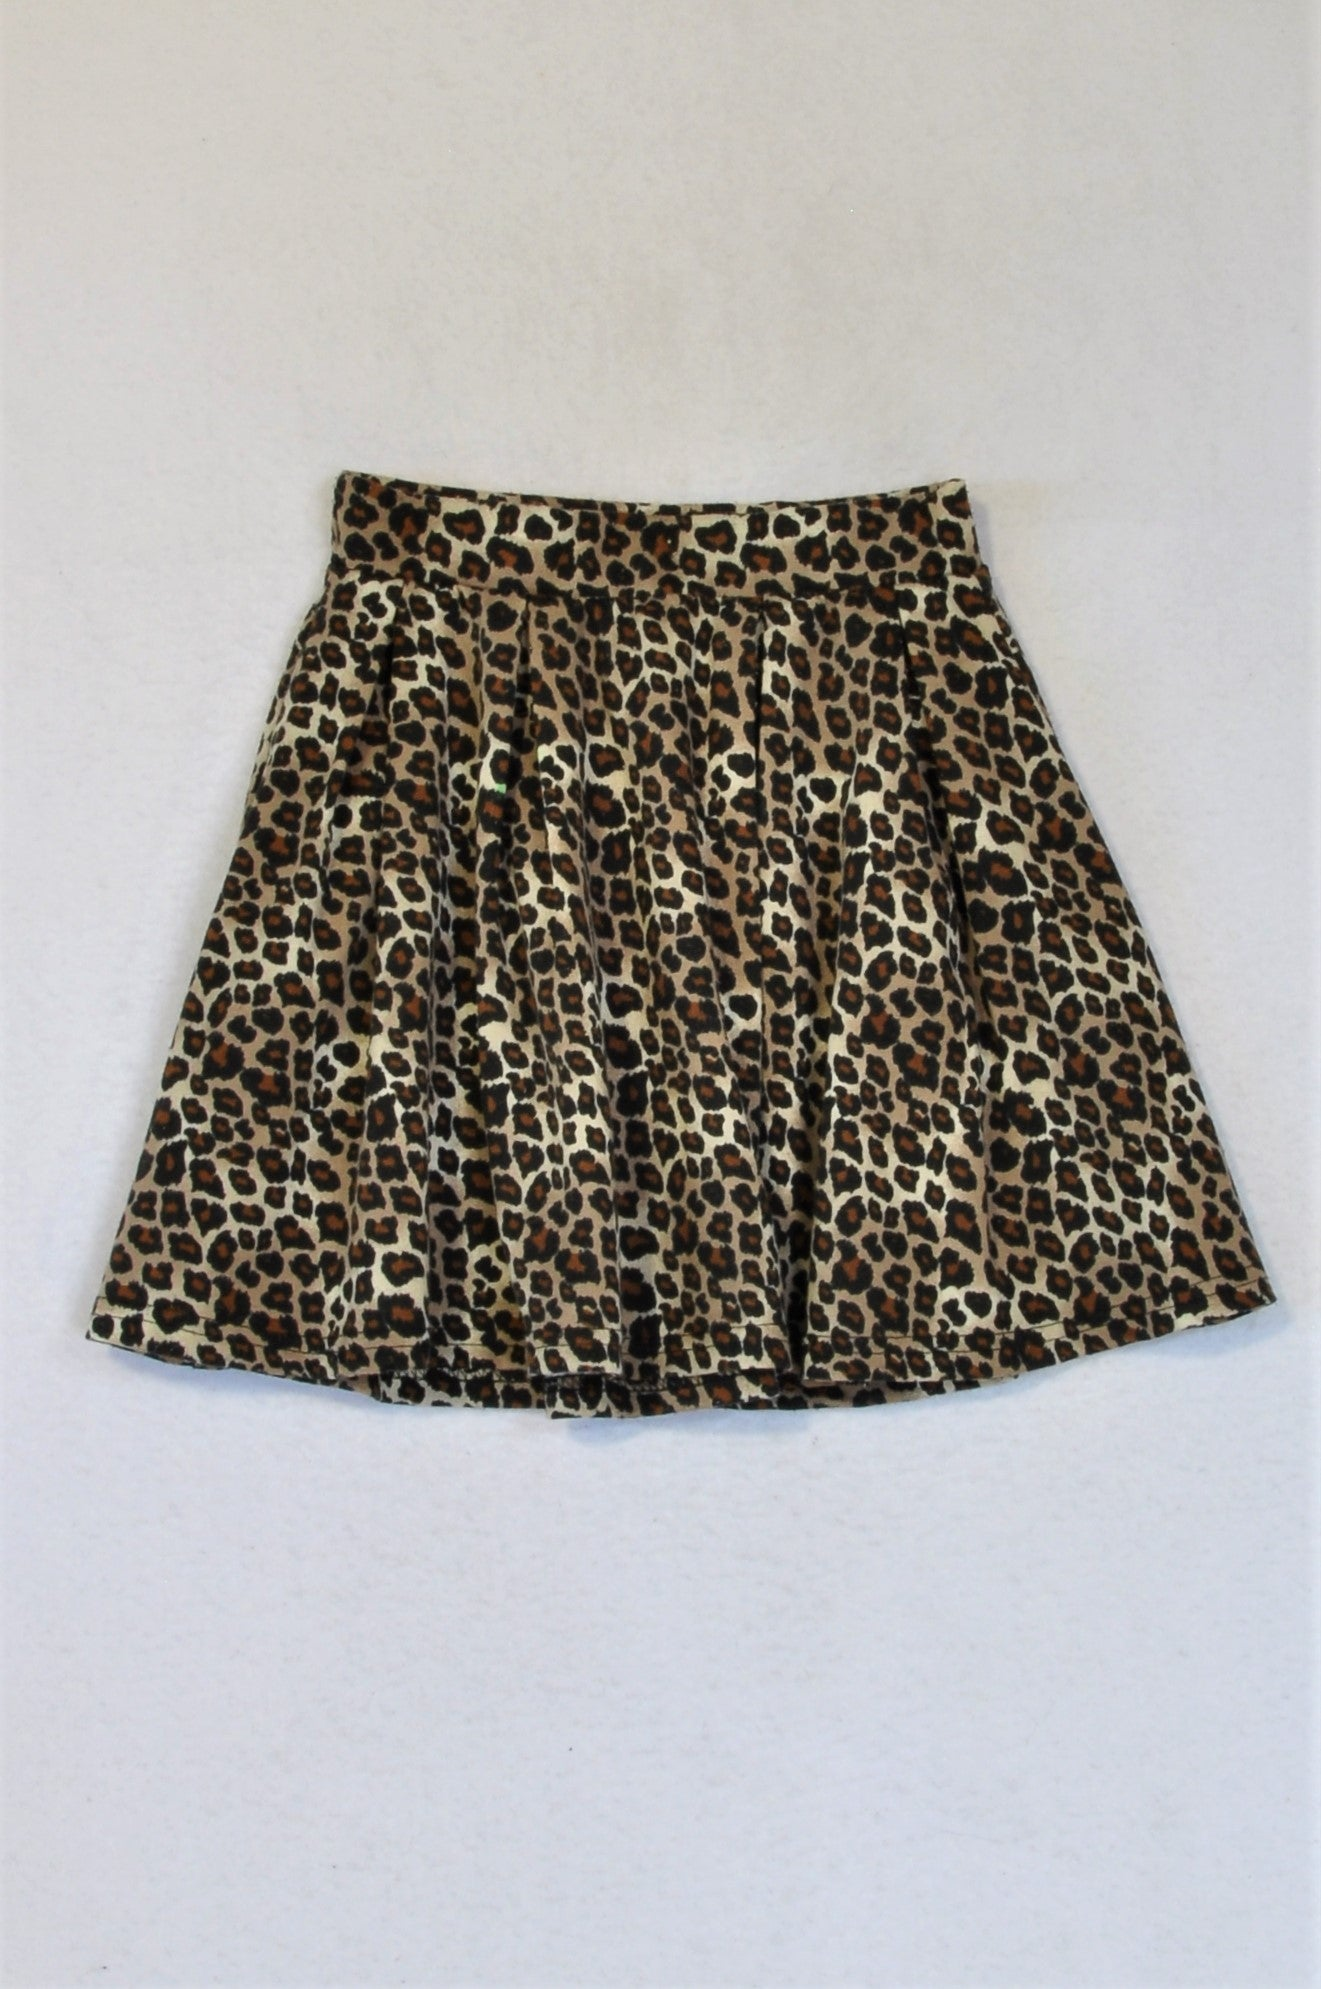 Mr. Price Leopard Print Skirt Girls 7-8 years